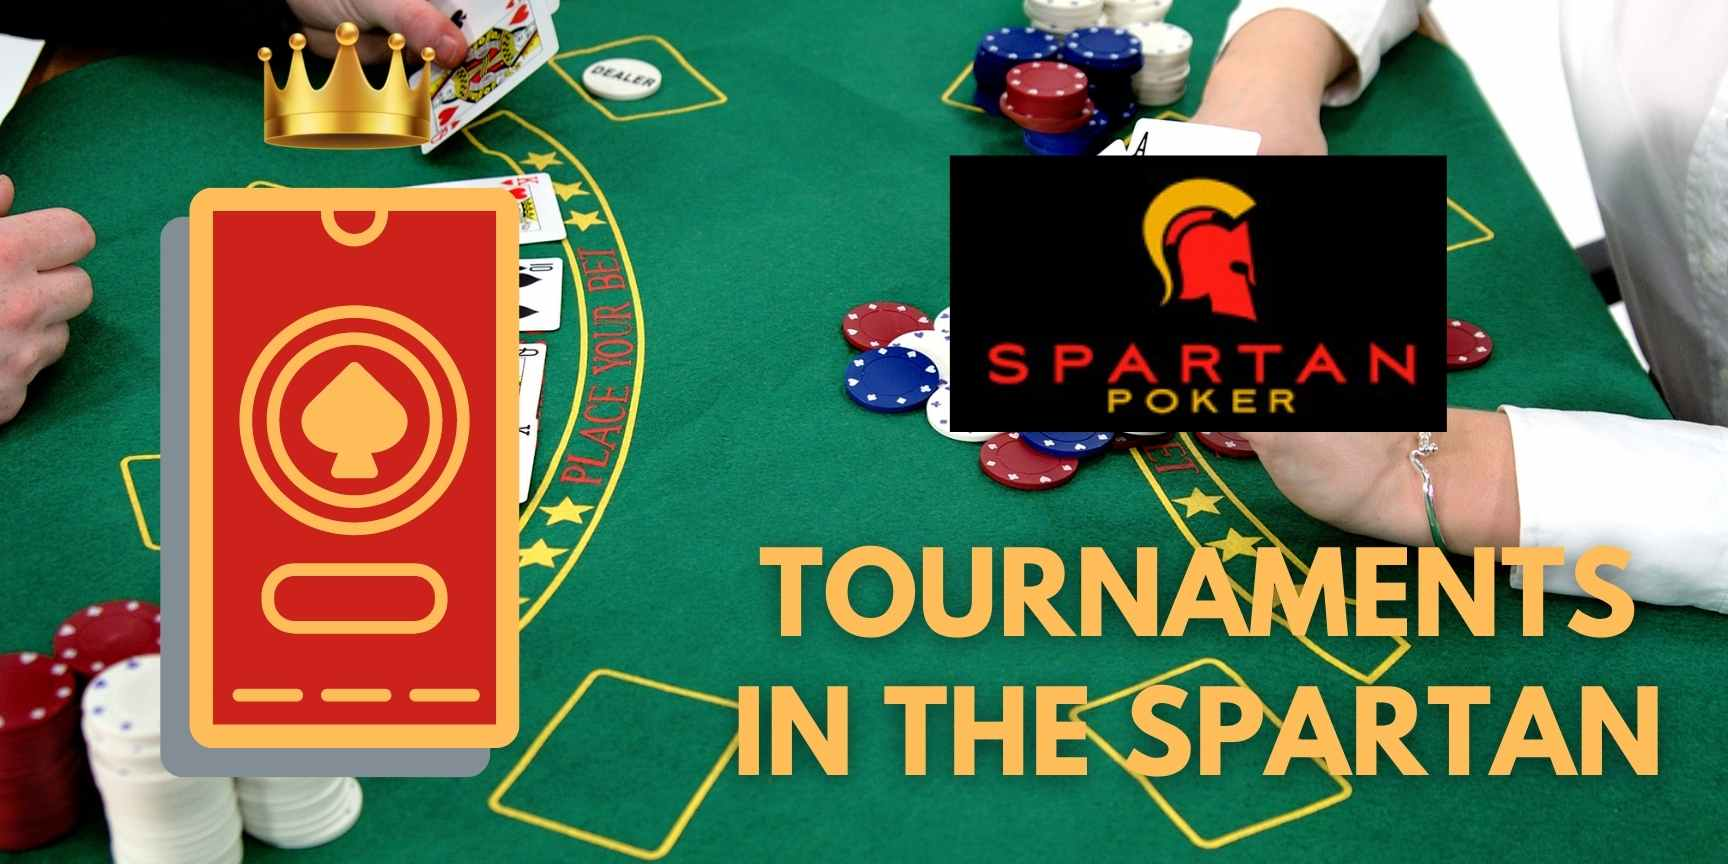 tournaments in the Spartan